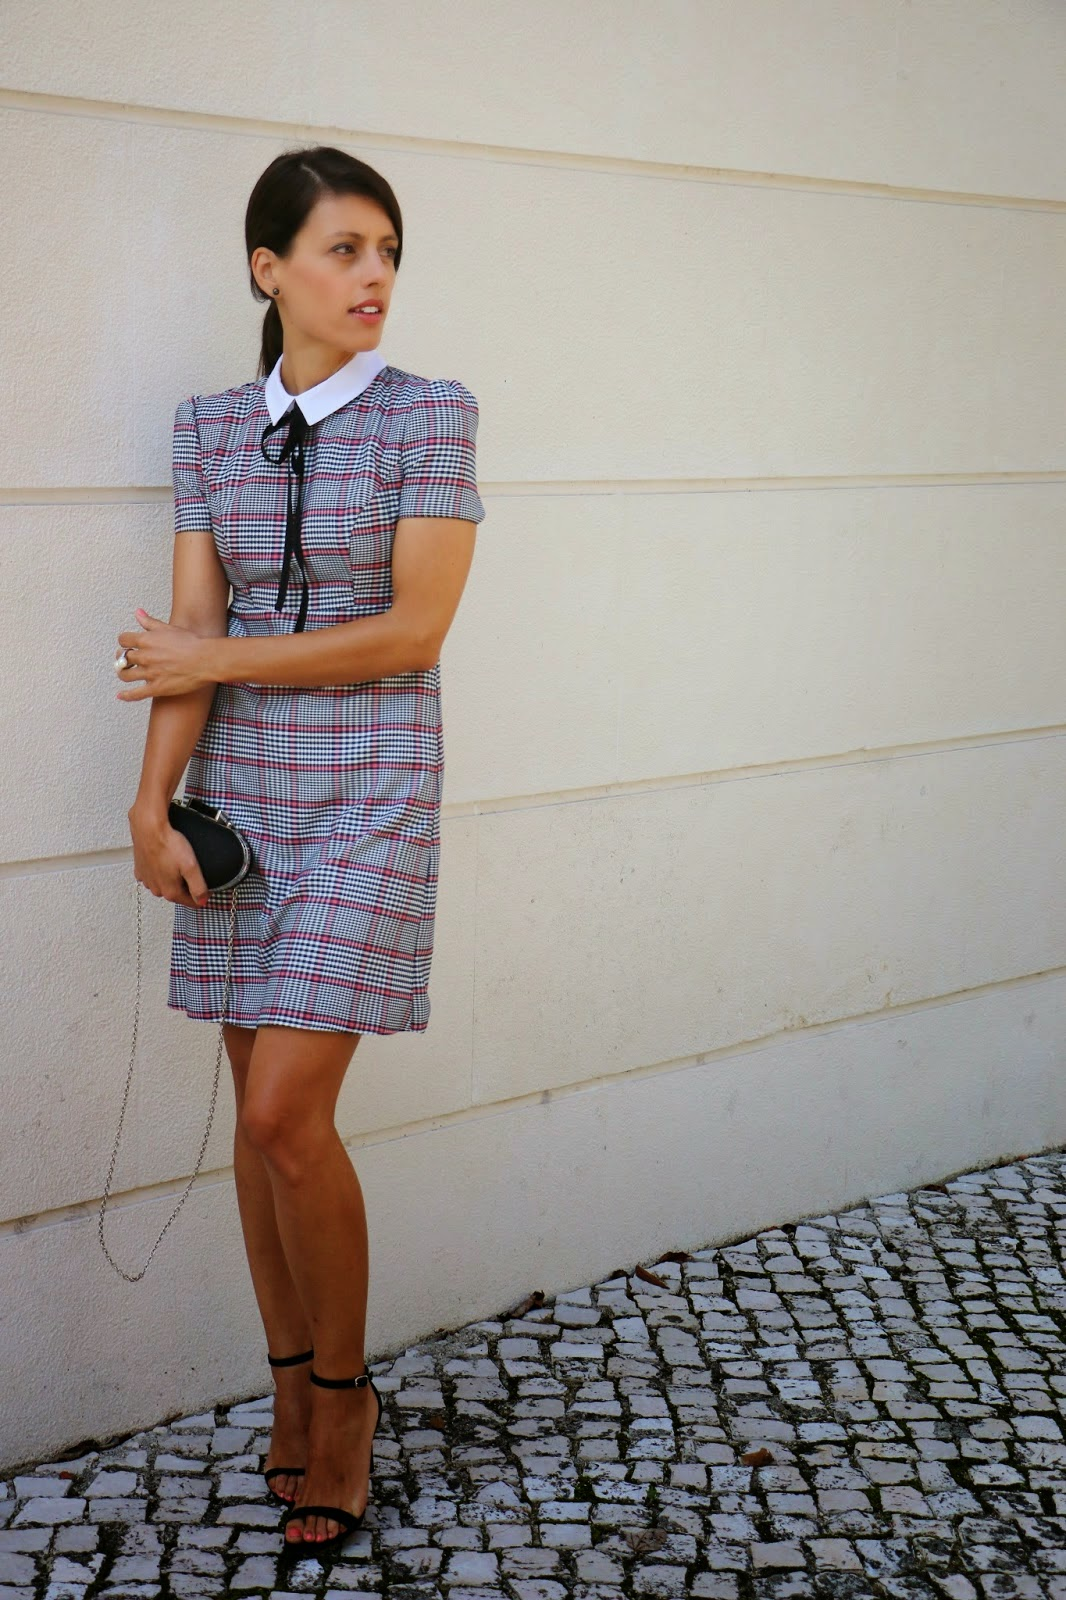 http://ilovefitametrica.blogspot.pt/2014/10/my-lovely-dress.html